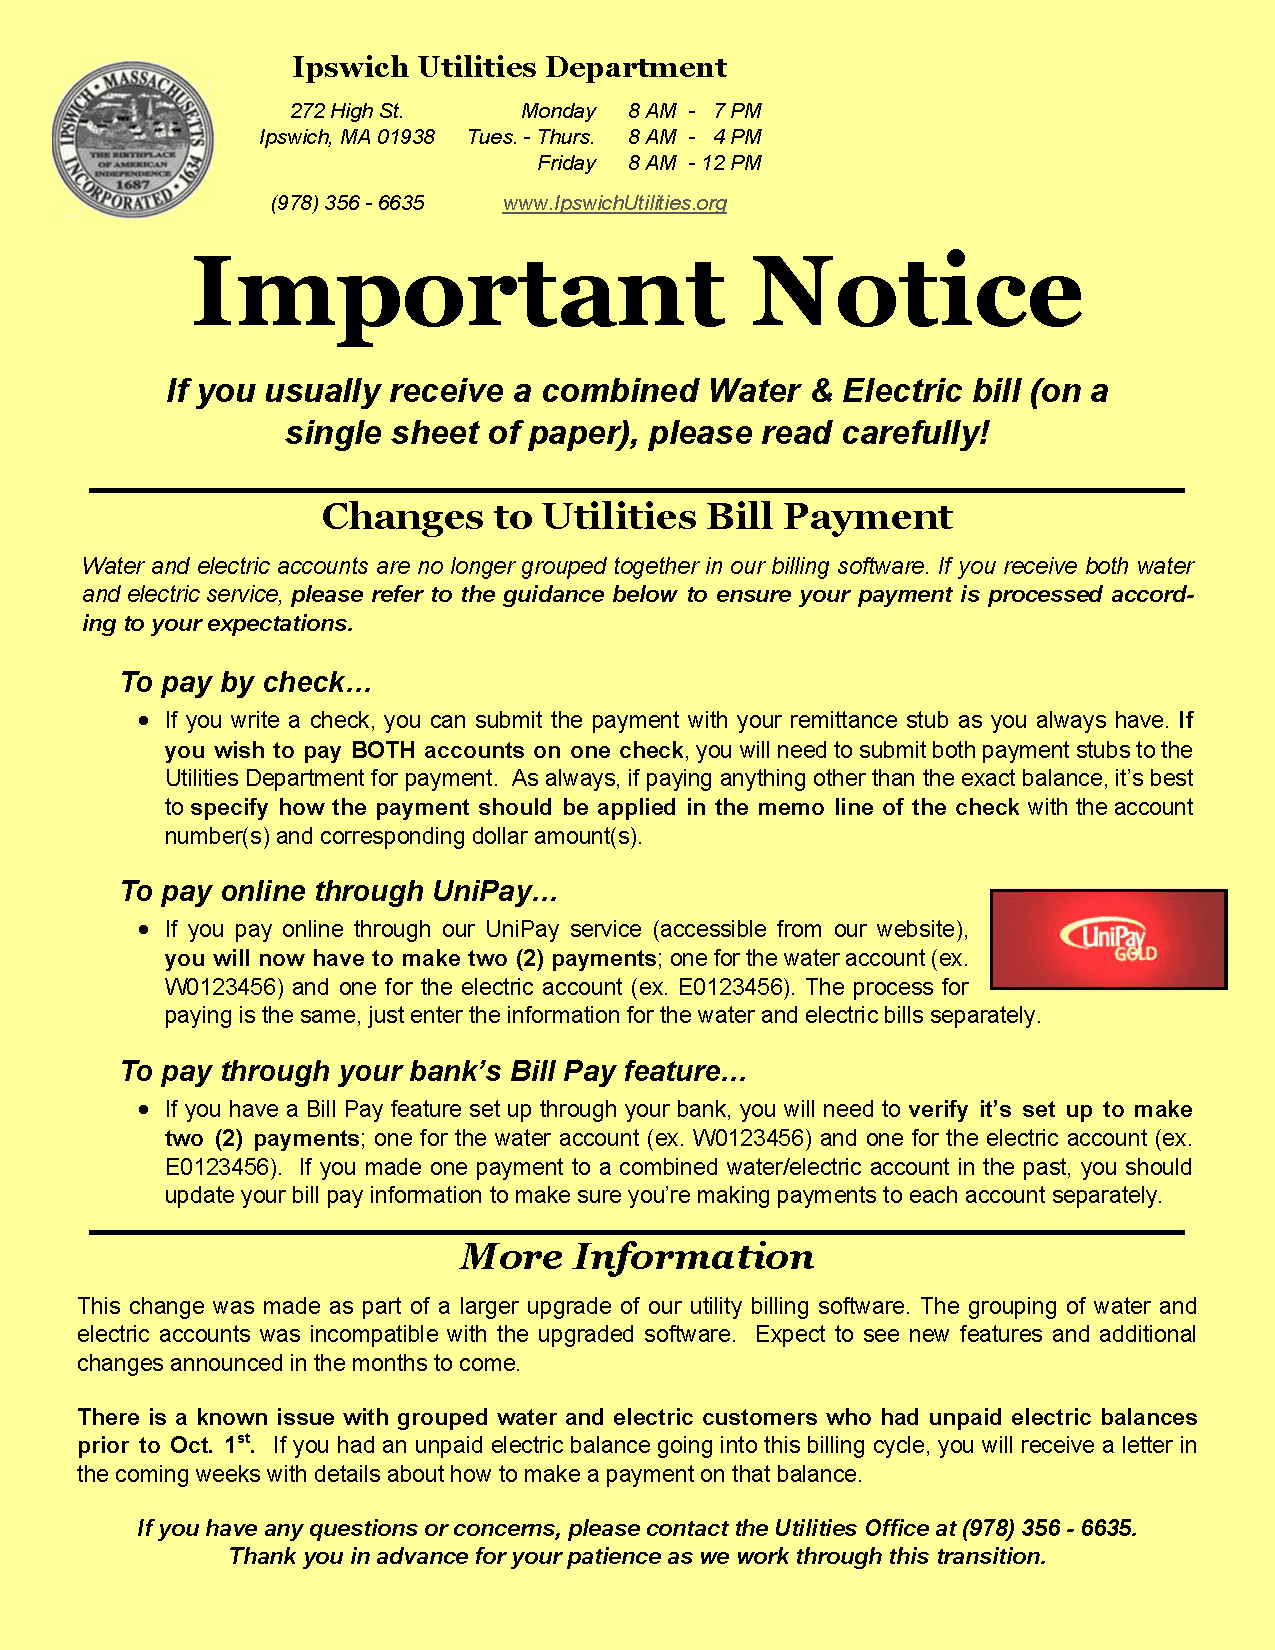 Important Notice Example